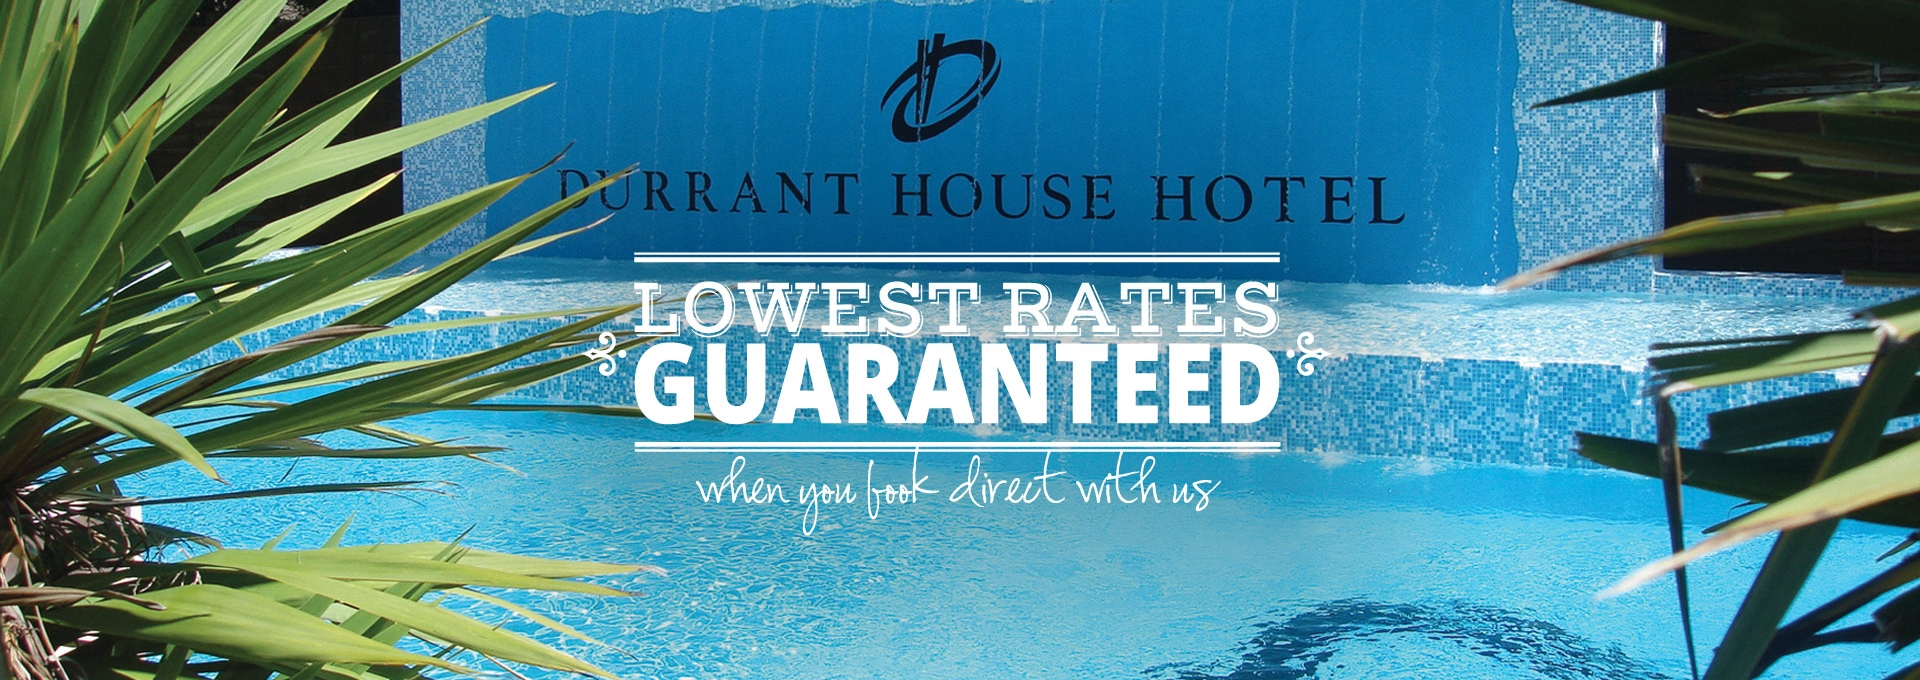 Lowest Rates Guaranteed when you book direct with us